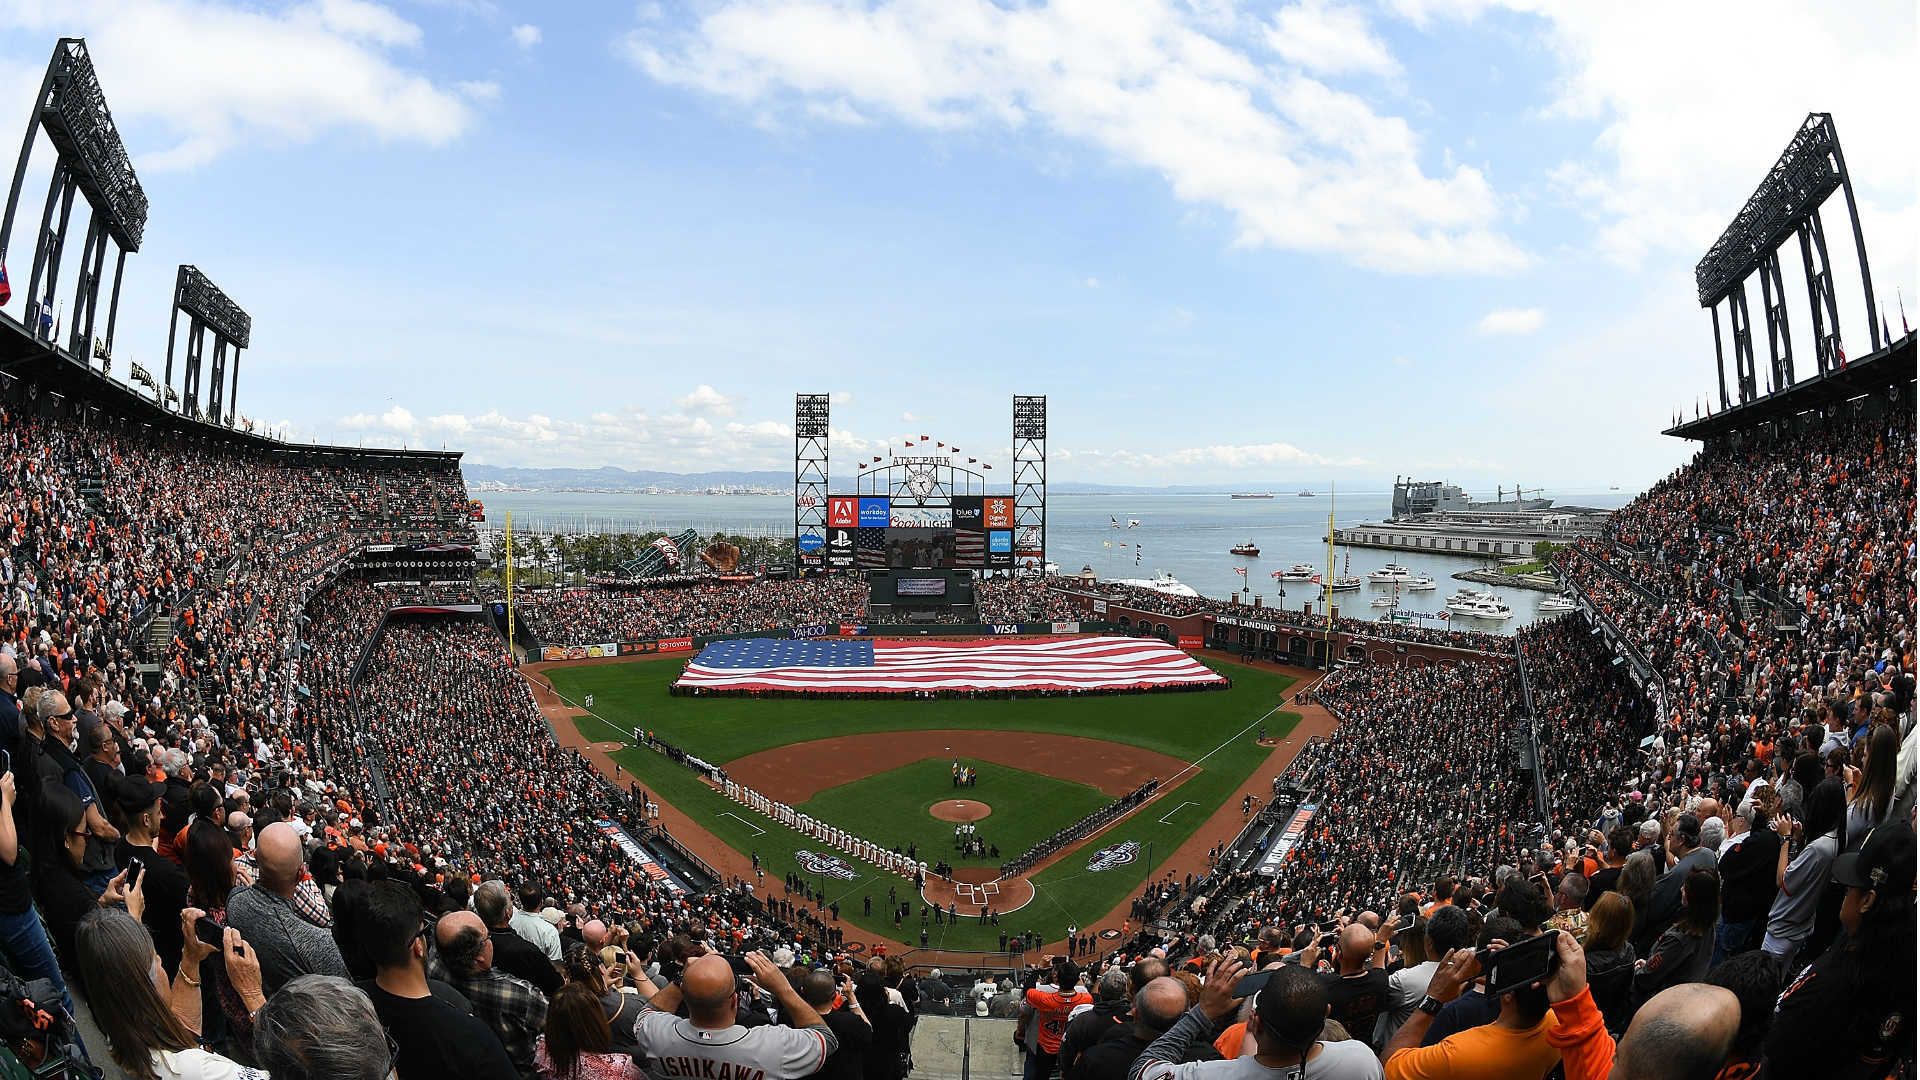 Raiders choose San Francisco Giants' stadium for 2019 home, but obstacles remain